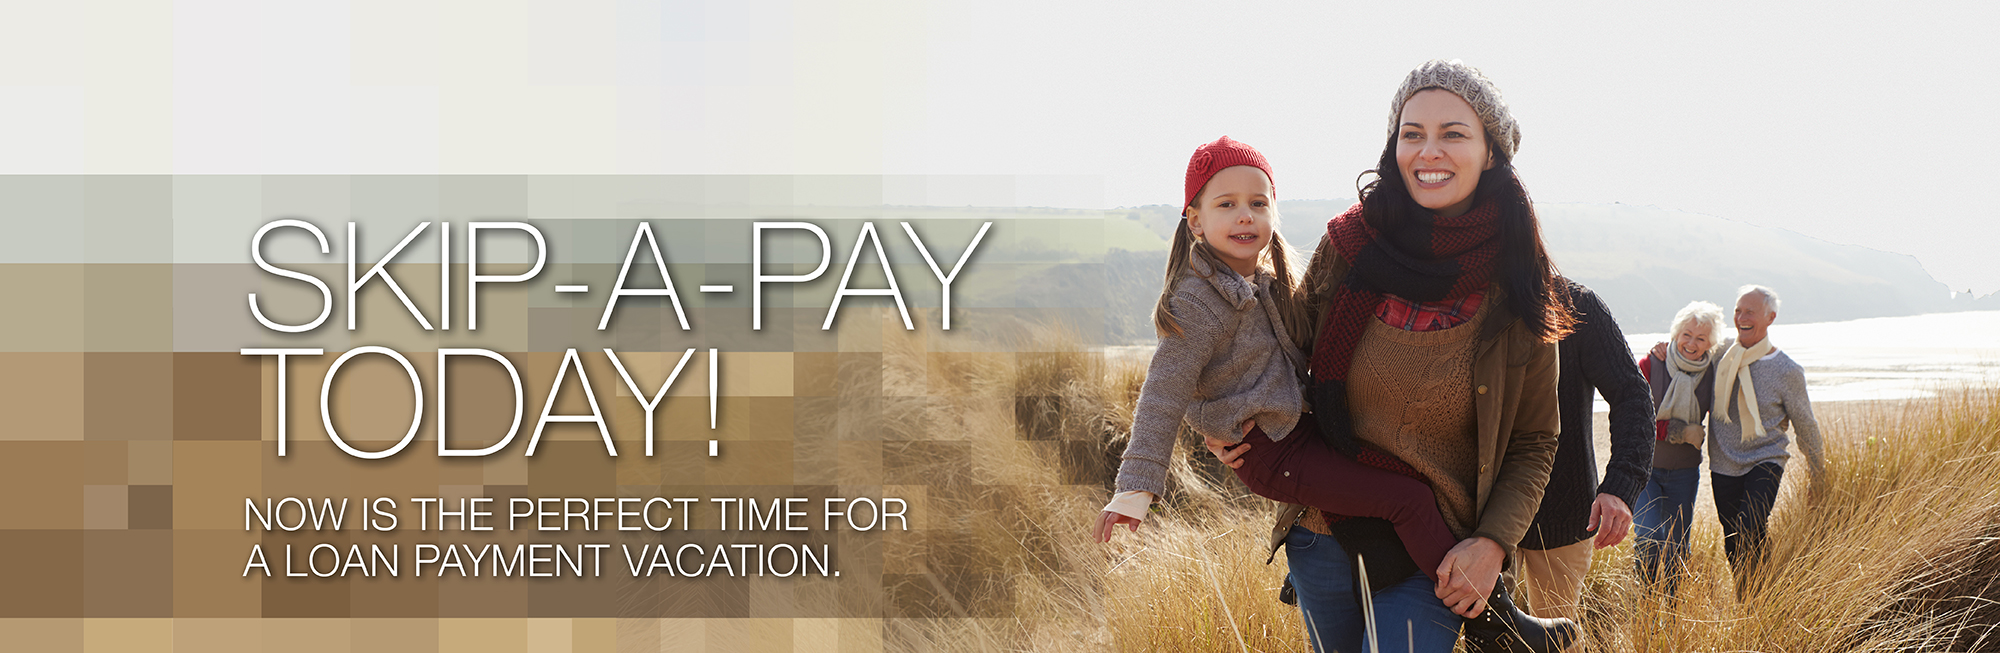 Skip a payment today!